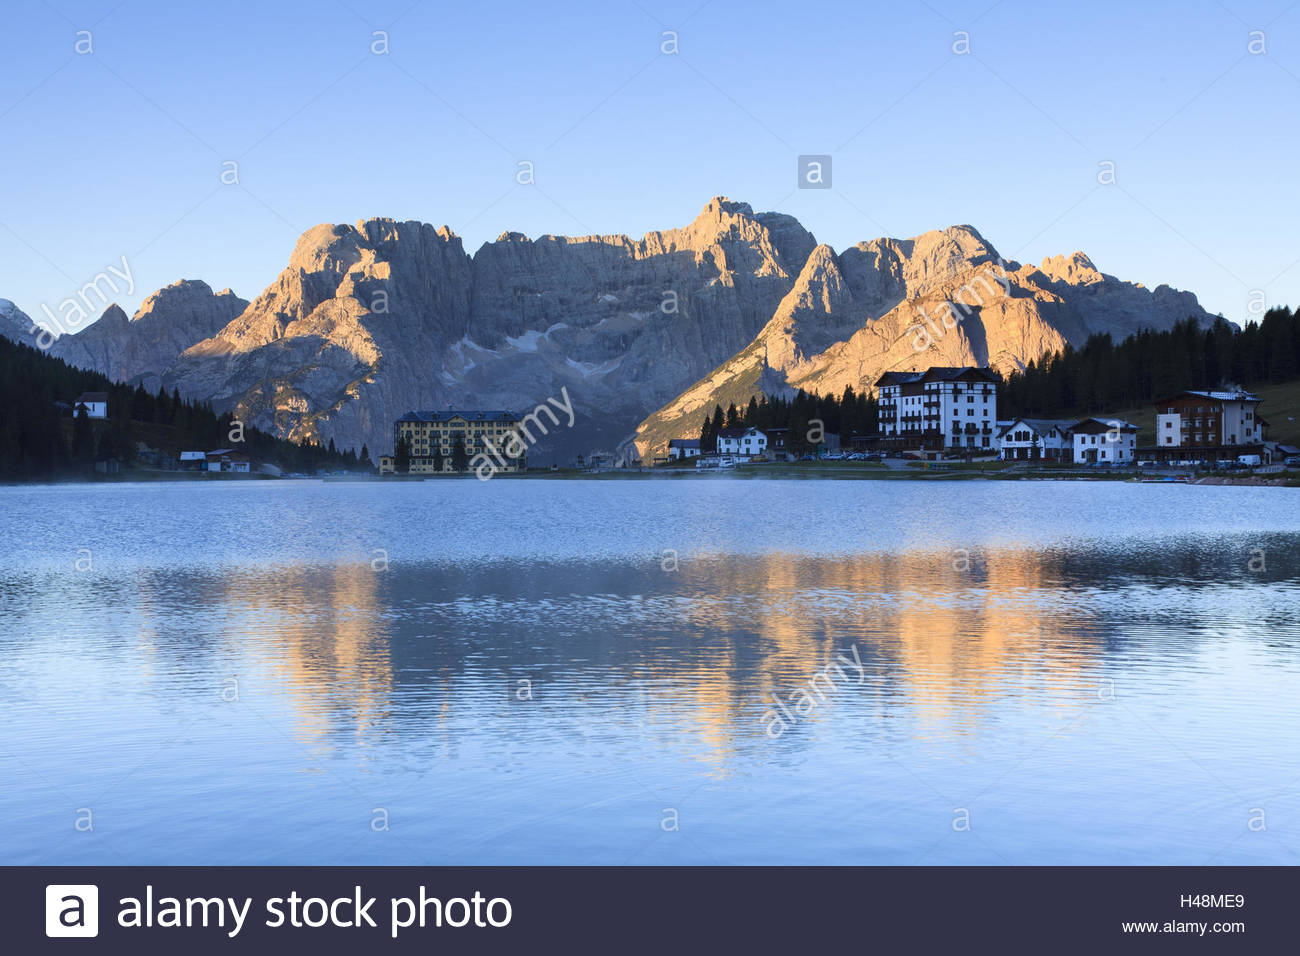 Mountain hotels at the Lago Misurina, Lake Misurina, in front of the massif of the Sorapis at sunrise, Italy, Trentino, - Stock Image